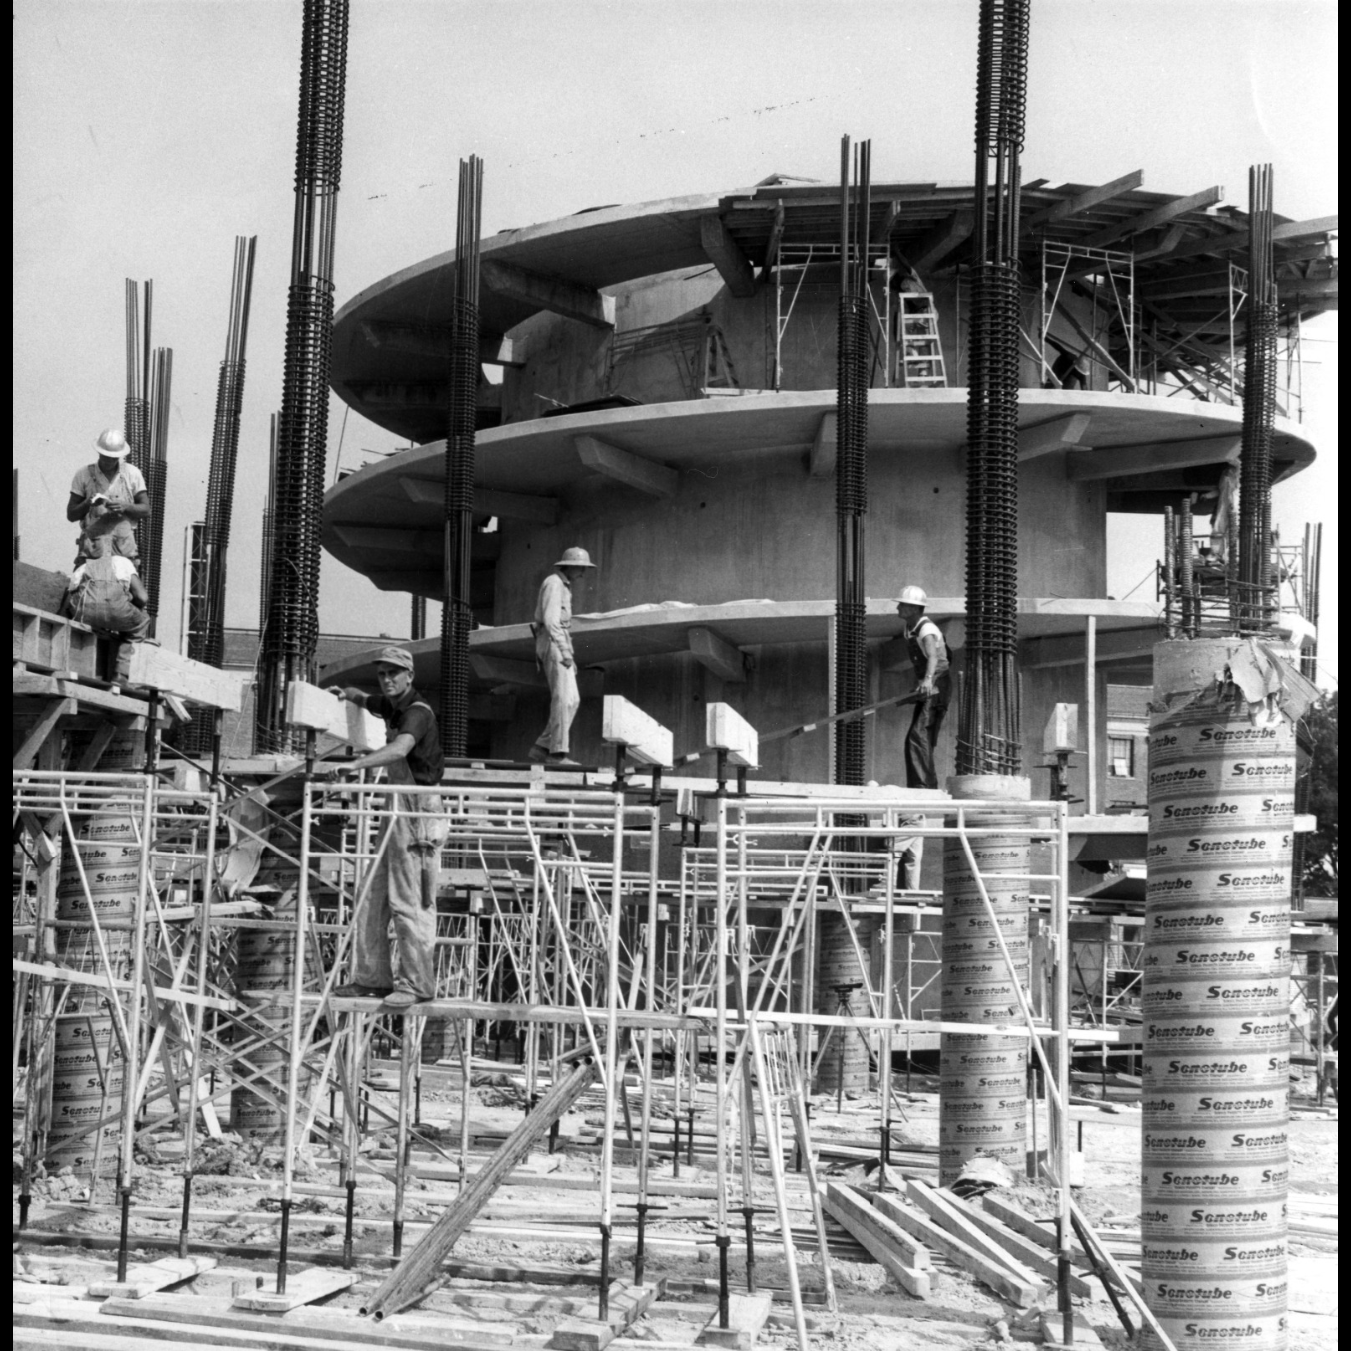 Harrelson Hall Under Construction ca 1960. Photo:Special Collections Research Center at NCSU Libraries